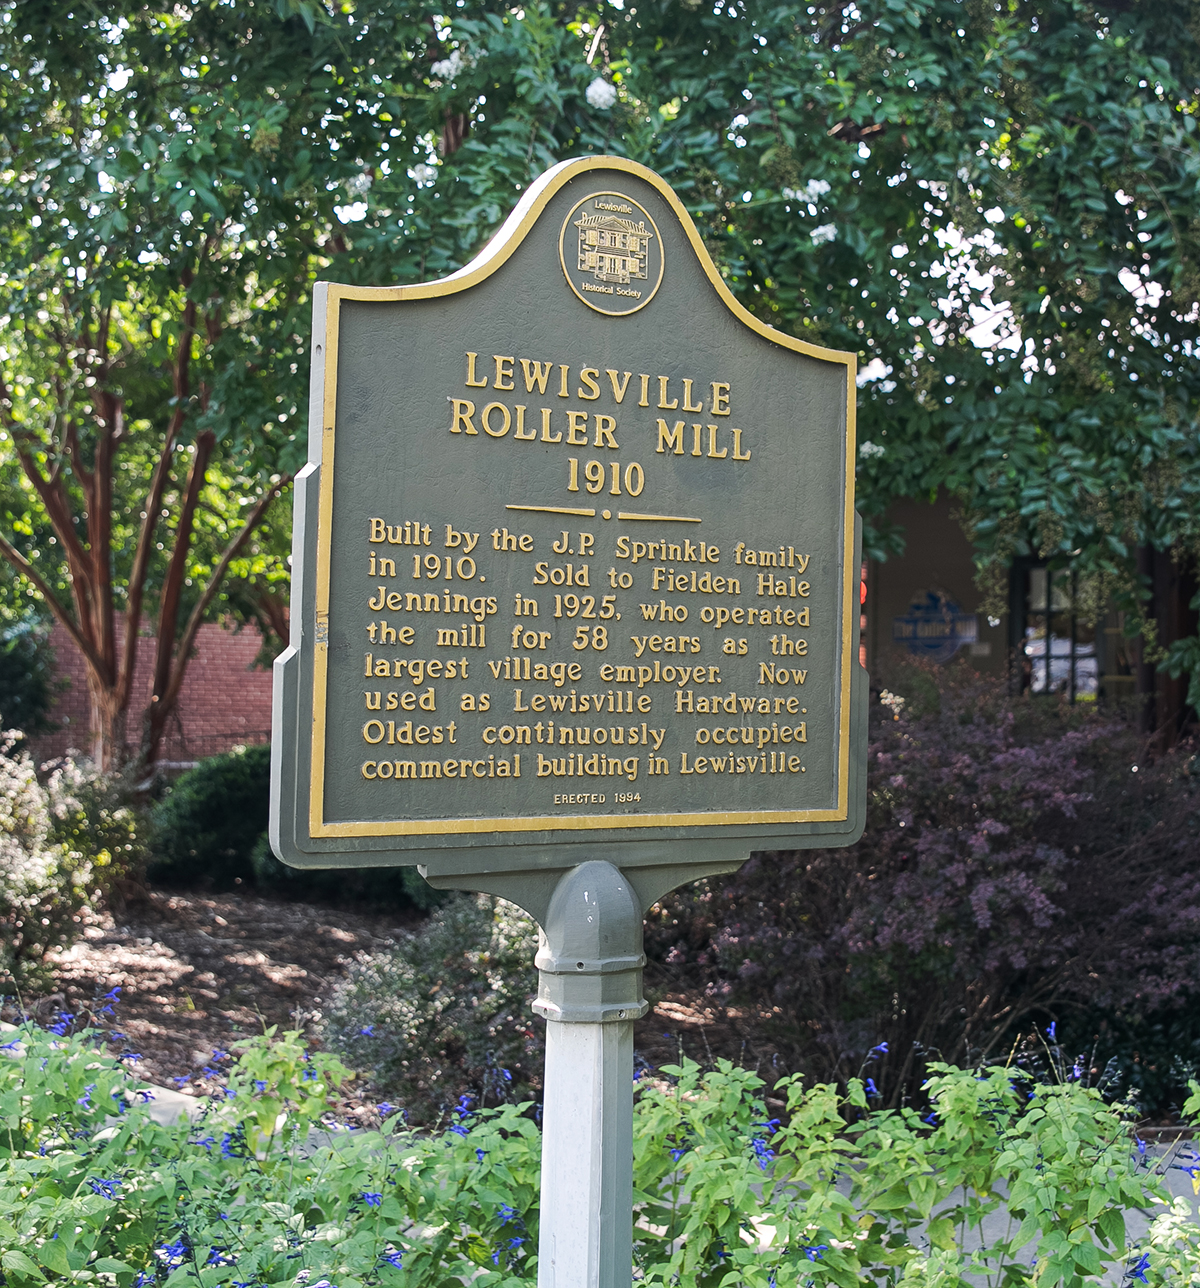 Lewisville Roller Mill 1910 historical sign